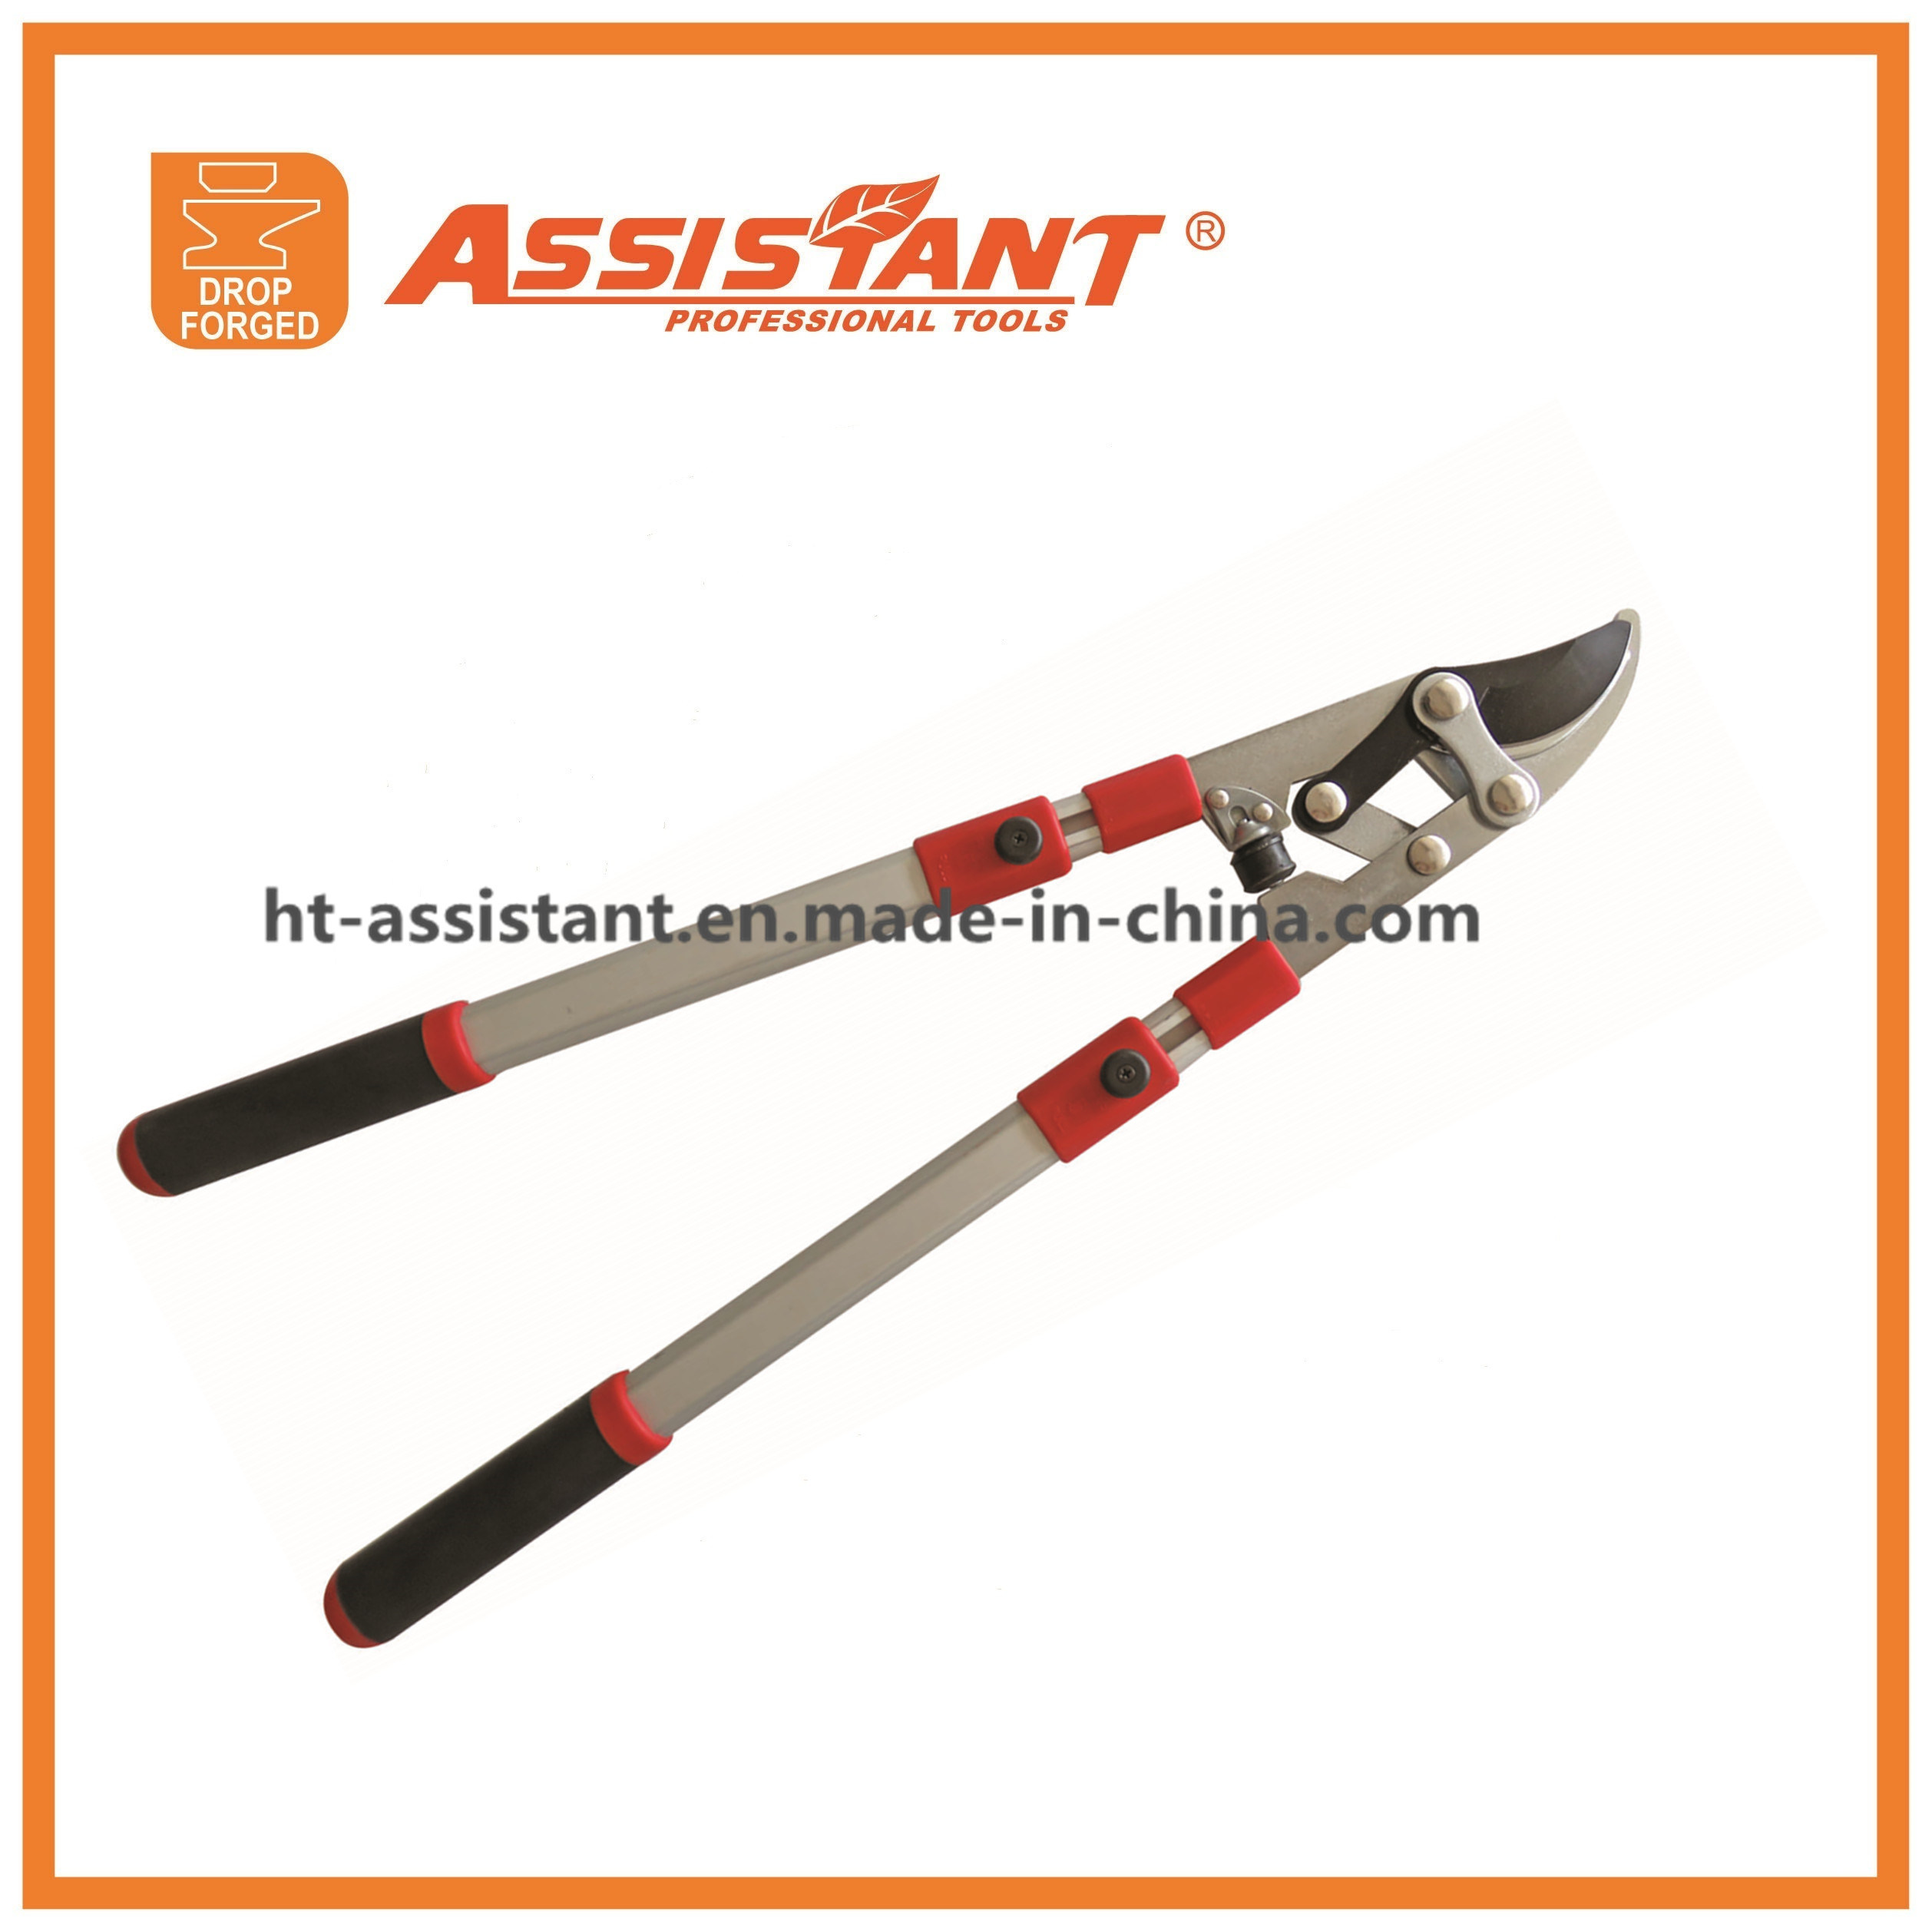 Garden Compound Lopping Shears Vineyard Pruning Anvil Loppers with Gear